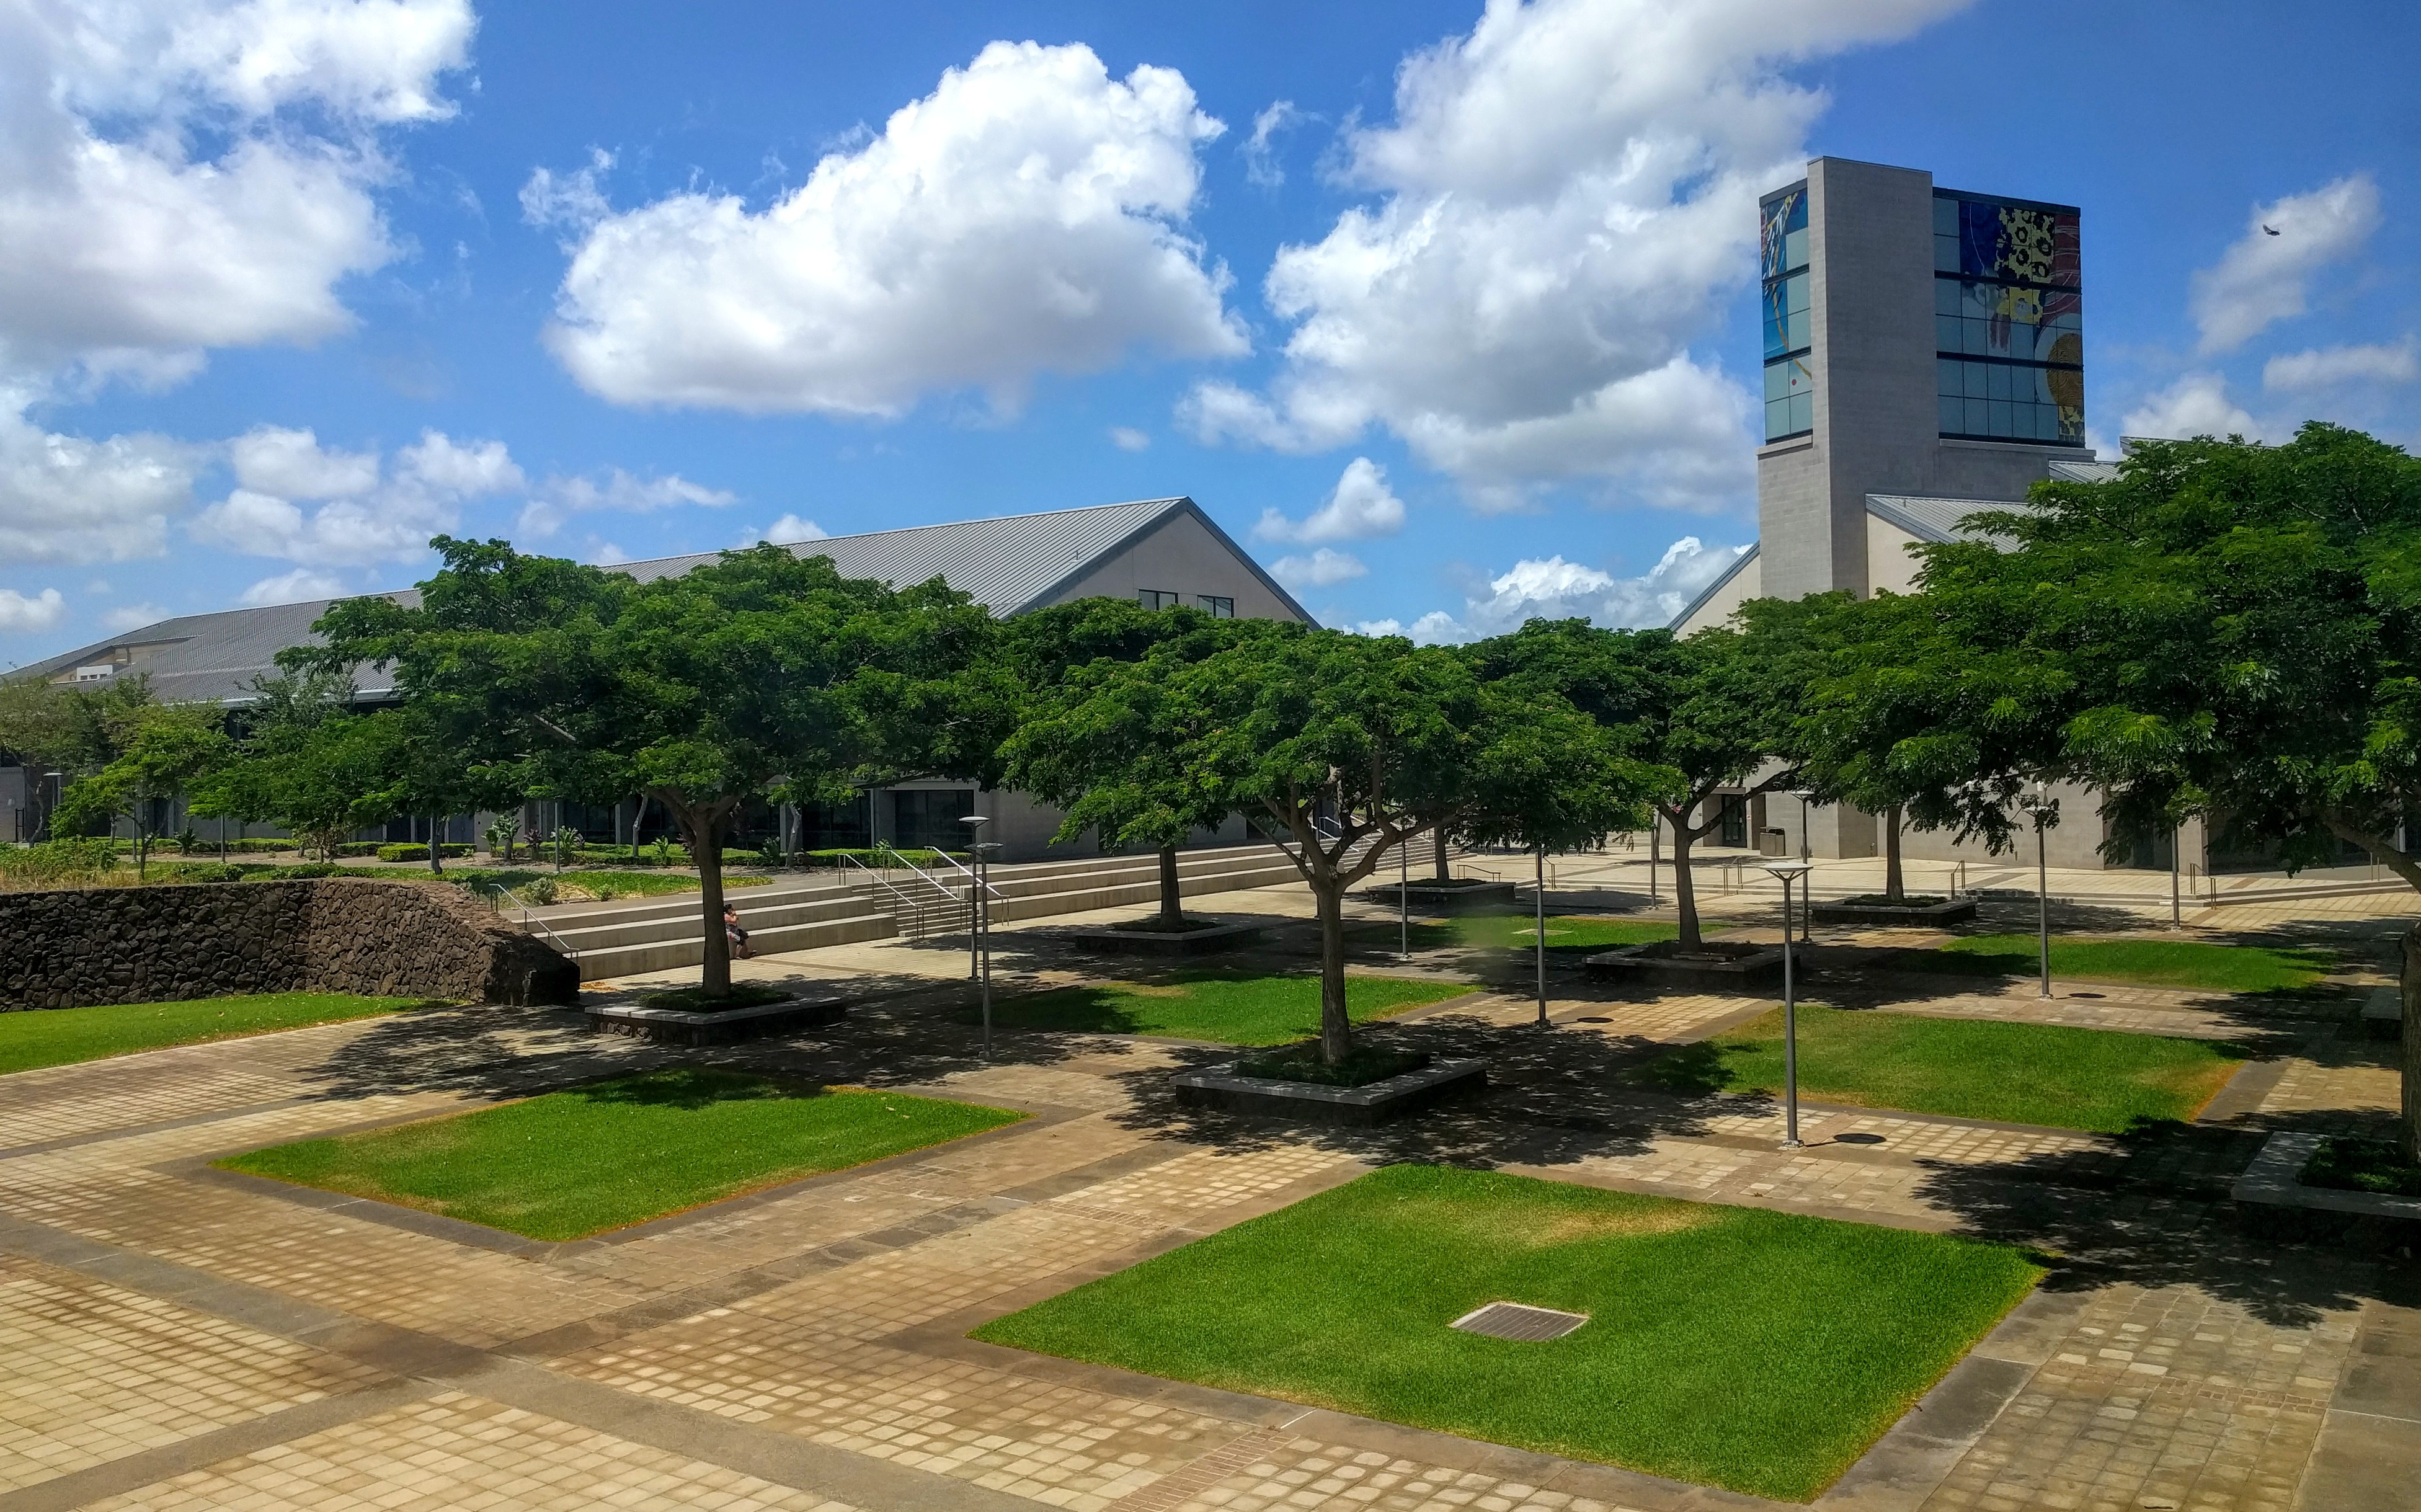 Photo of UH West Oahu campus